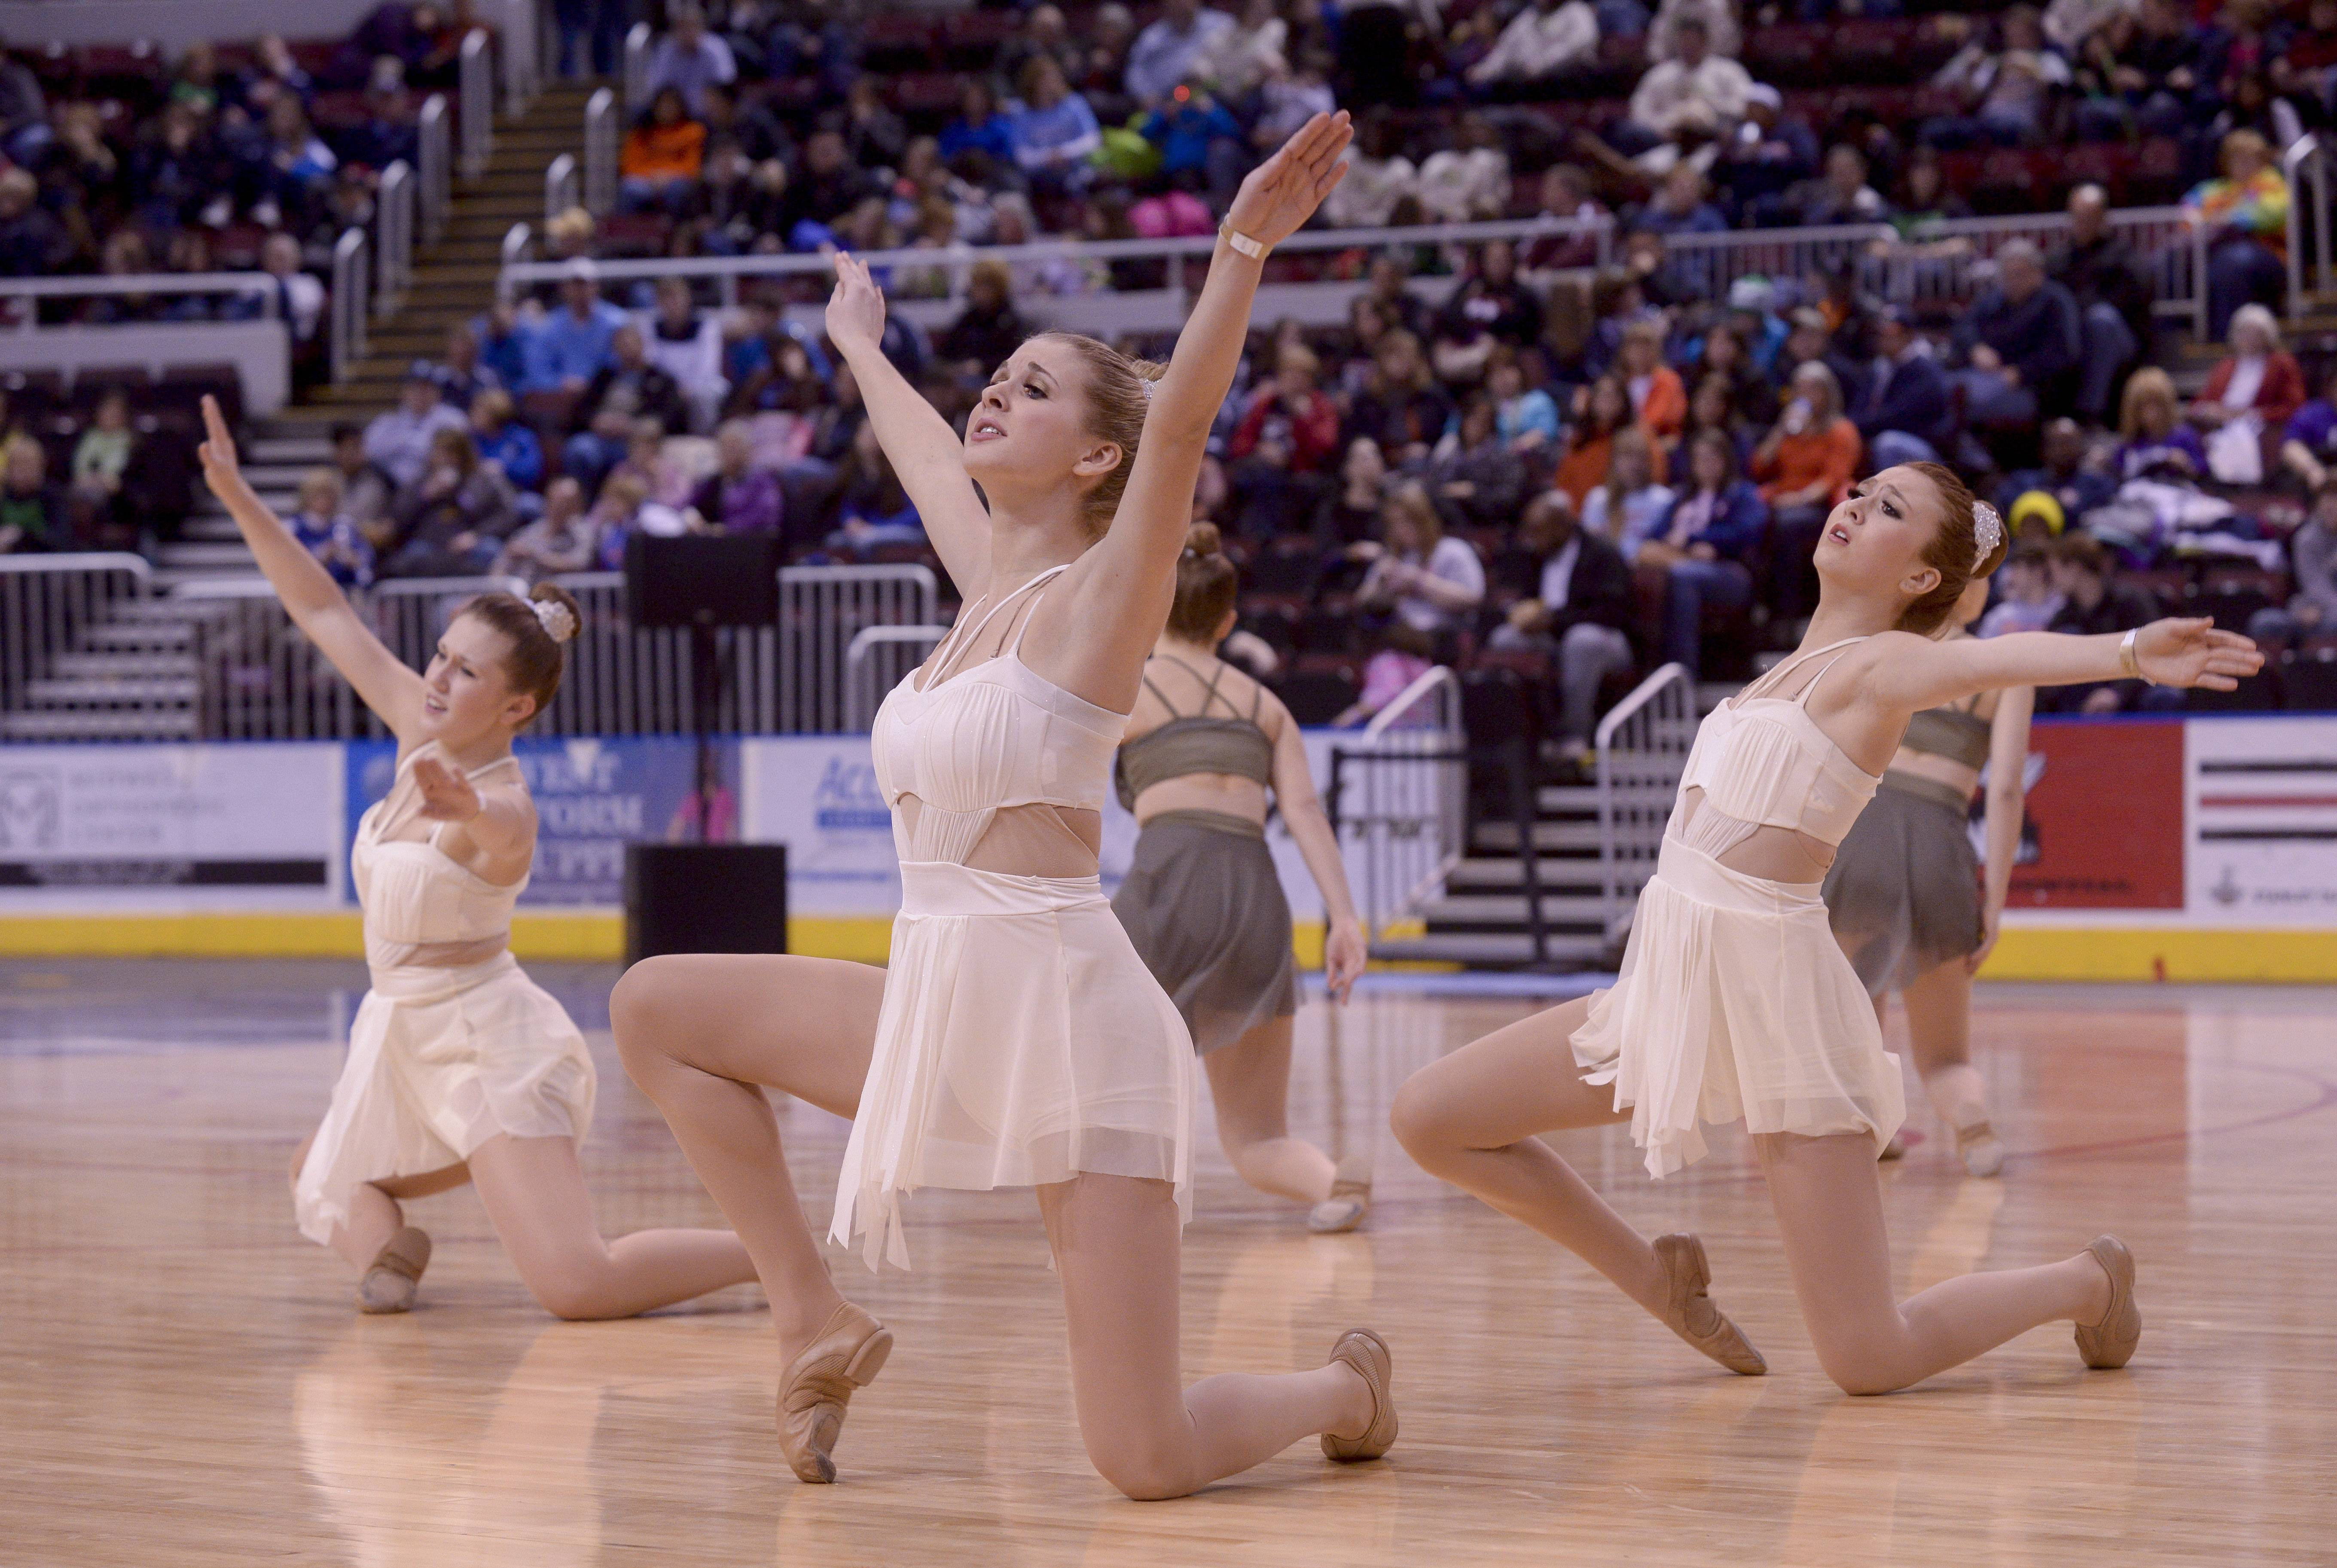 Batavia High School performs in the 2A Open Dance category during the TEAMDance Illinois 2014 Grand Championship in Peoria, Sunday March 2nd.